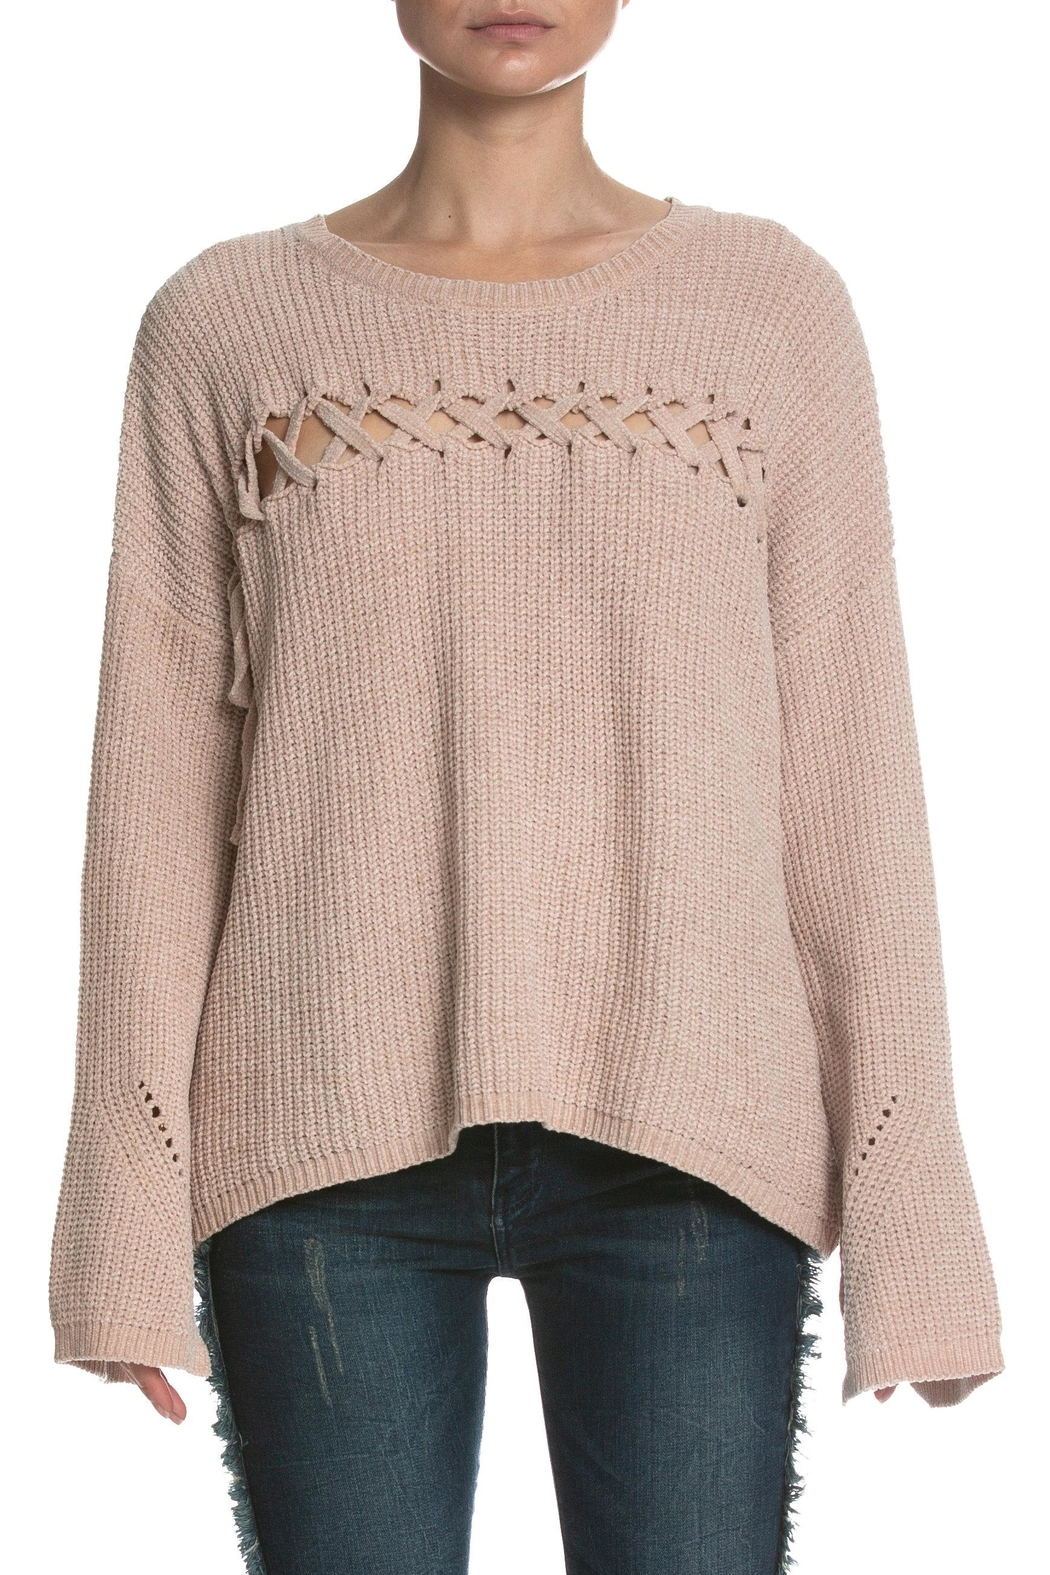 Elan Lace Up Sweater - Main Image